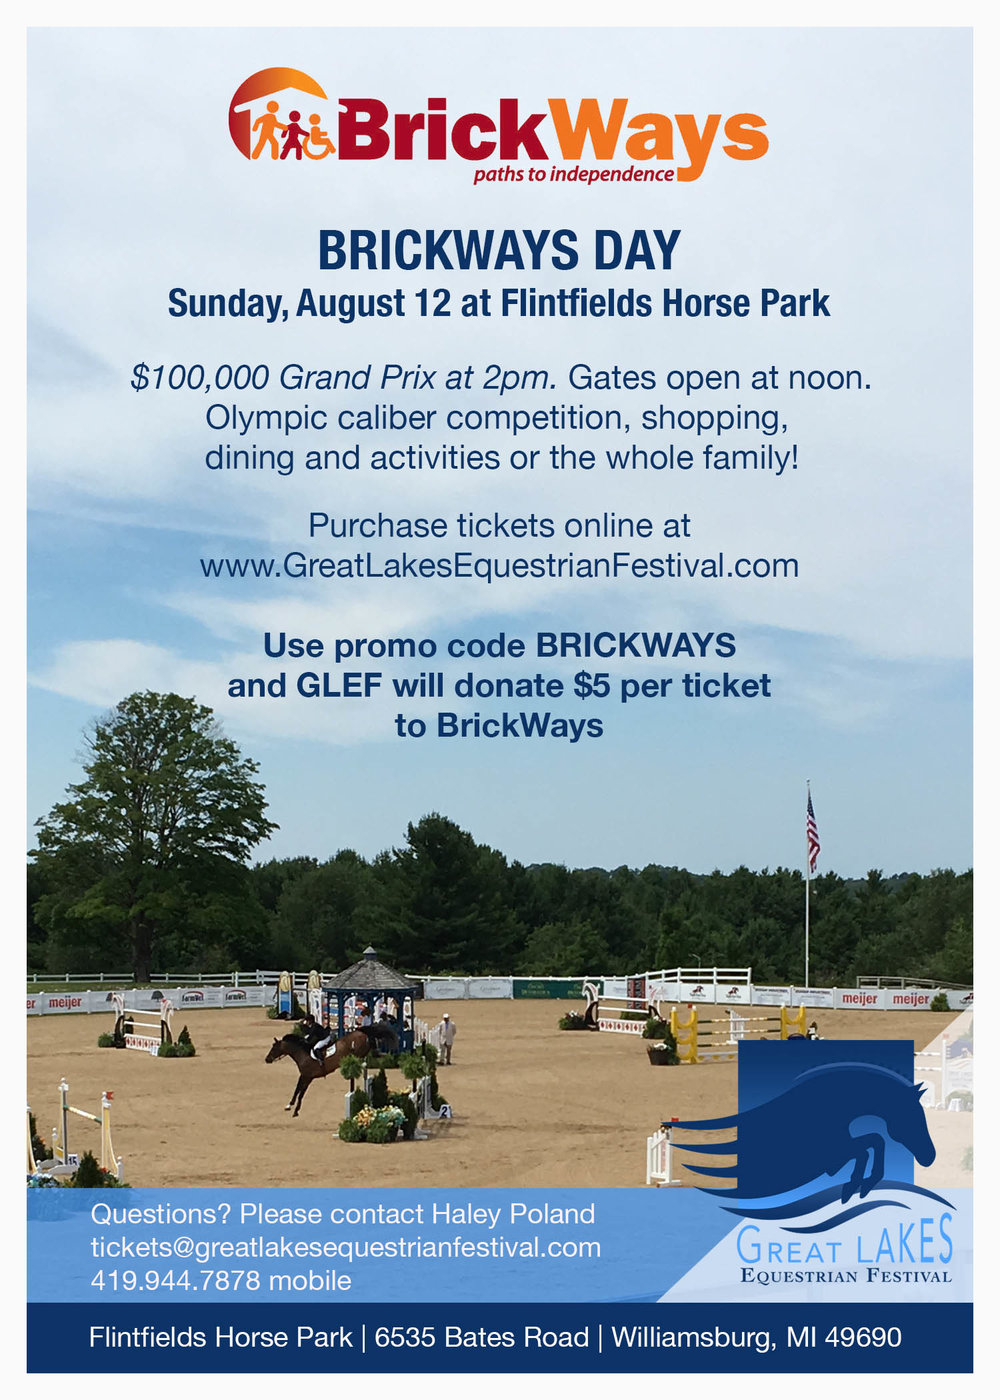 Brickways_2018 GLEF Fundraising Ticket Flyer.jpg